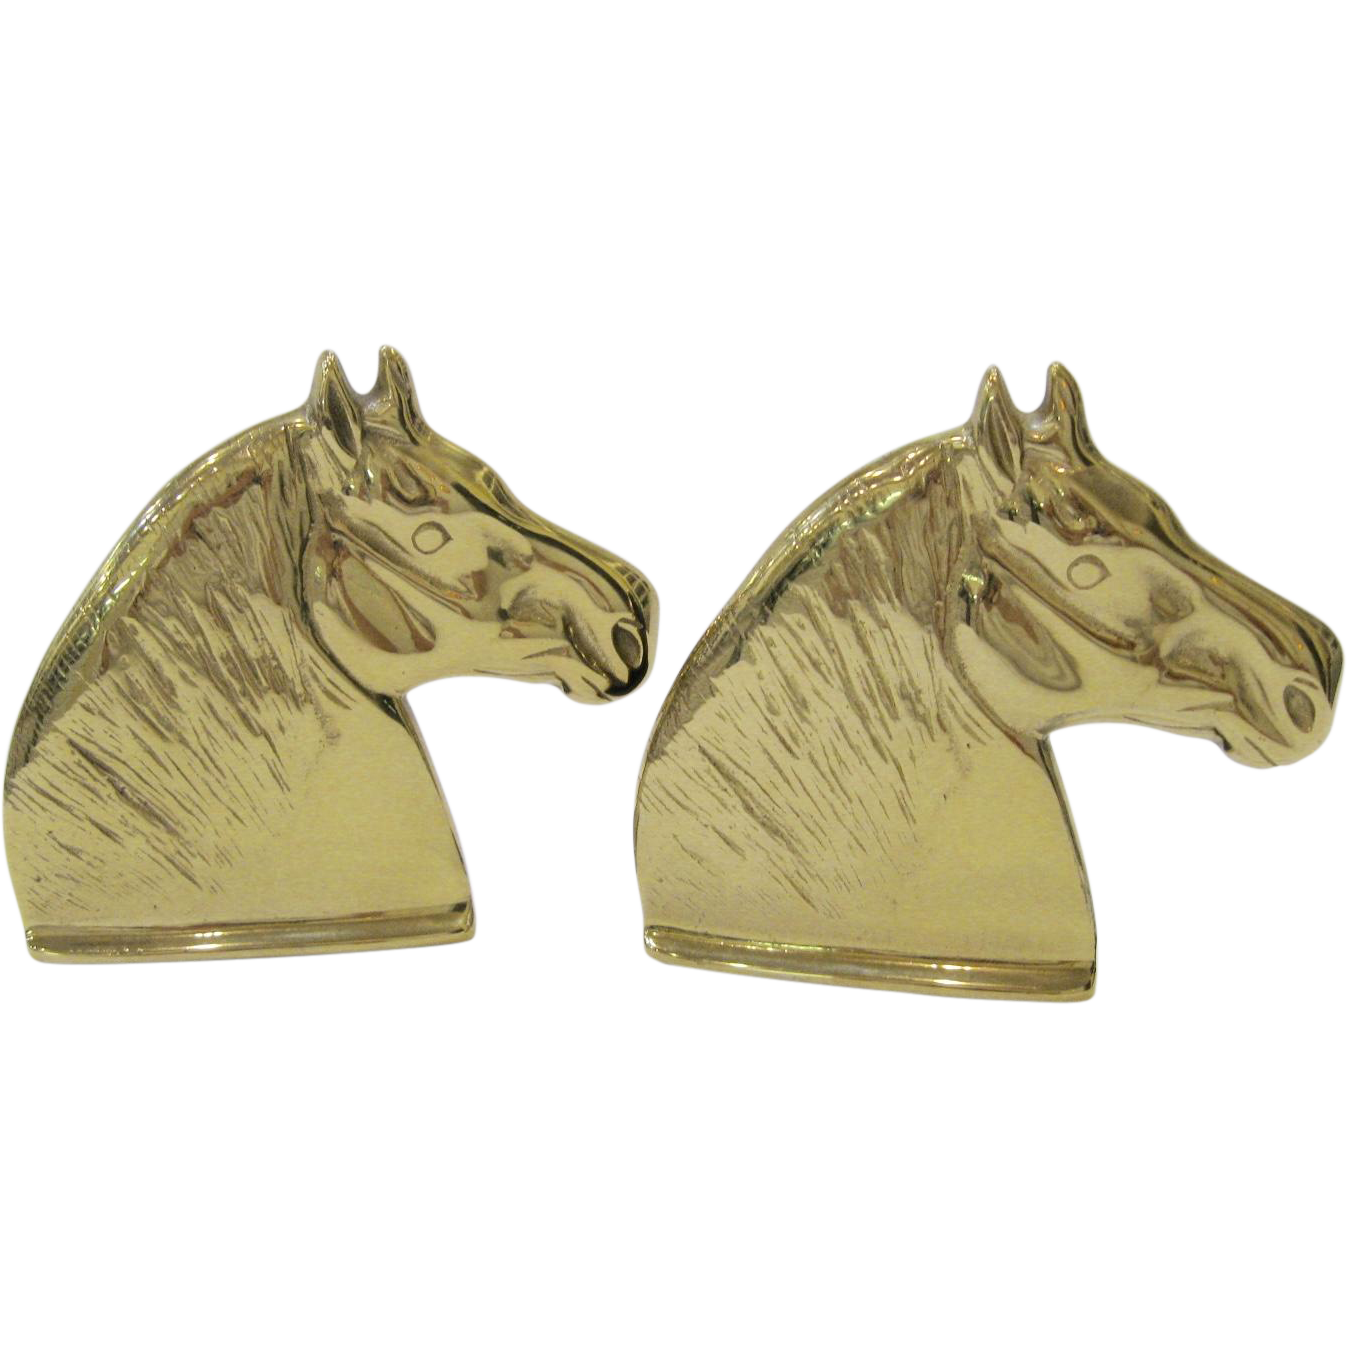 Pair Virginia Metalcrafters Brass Percheron Horse Bookends